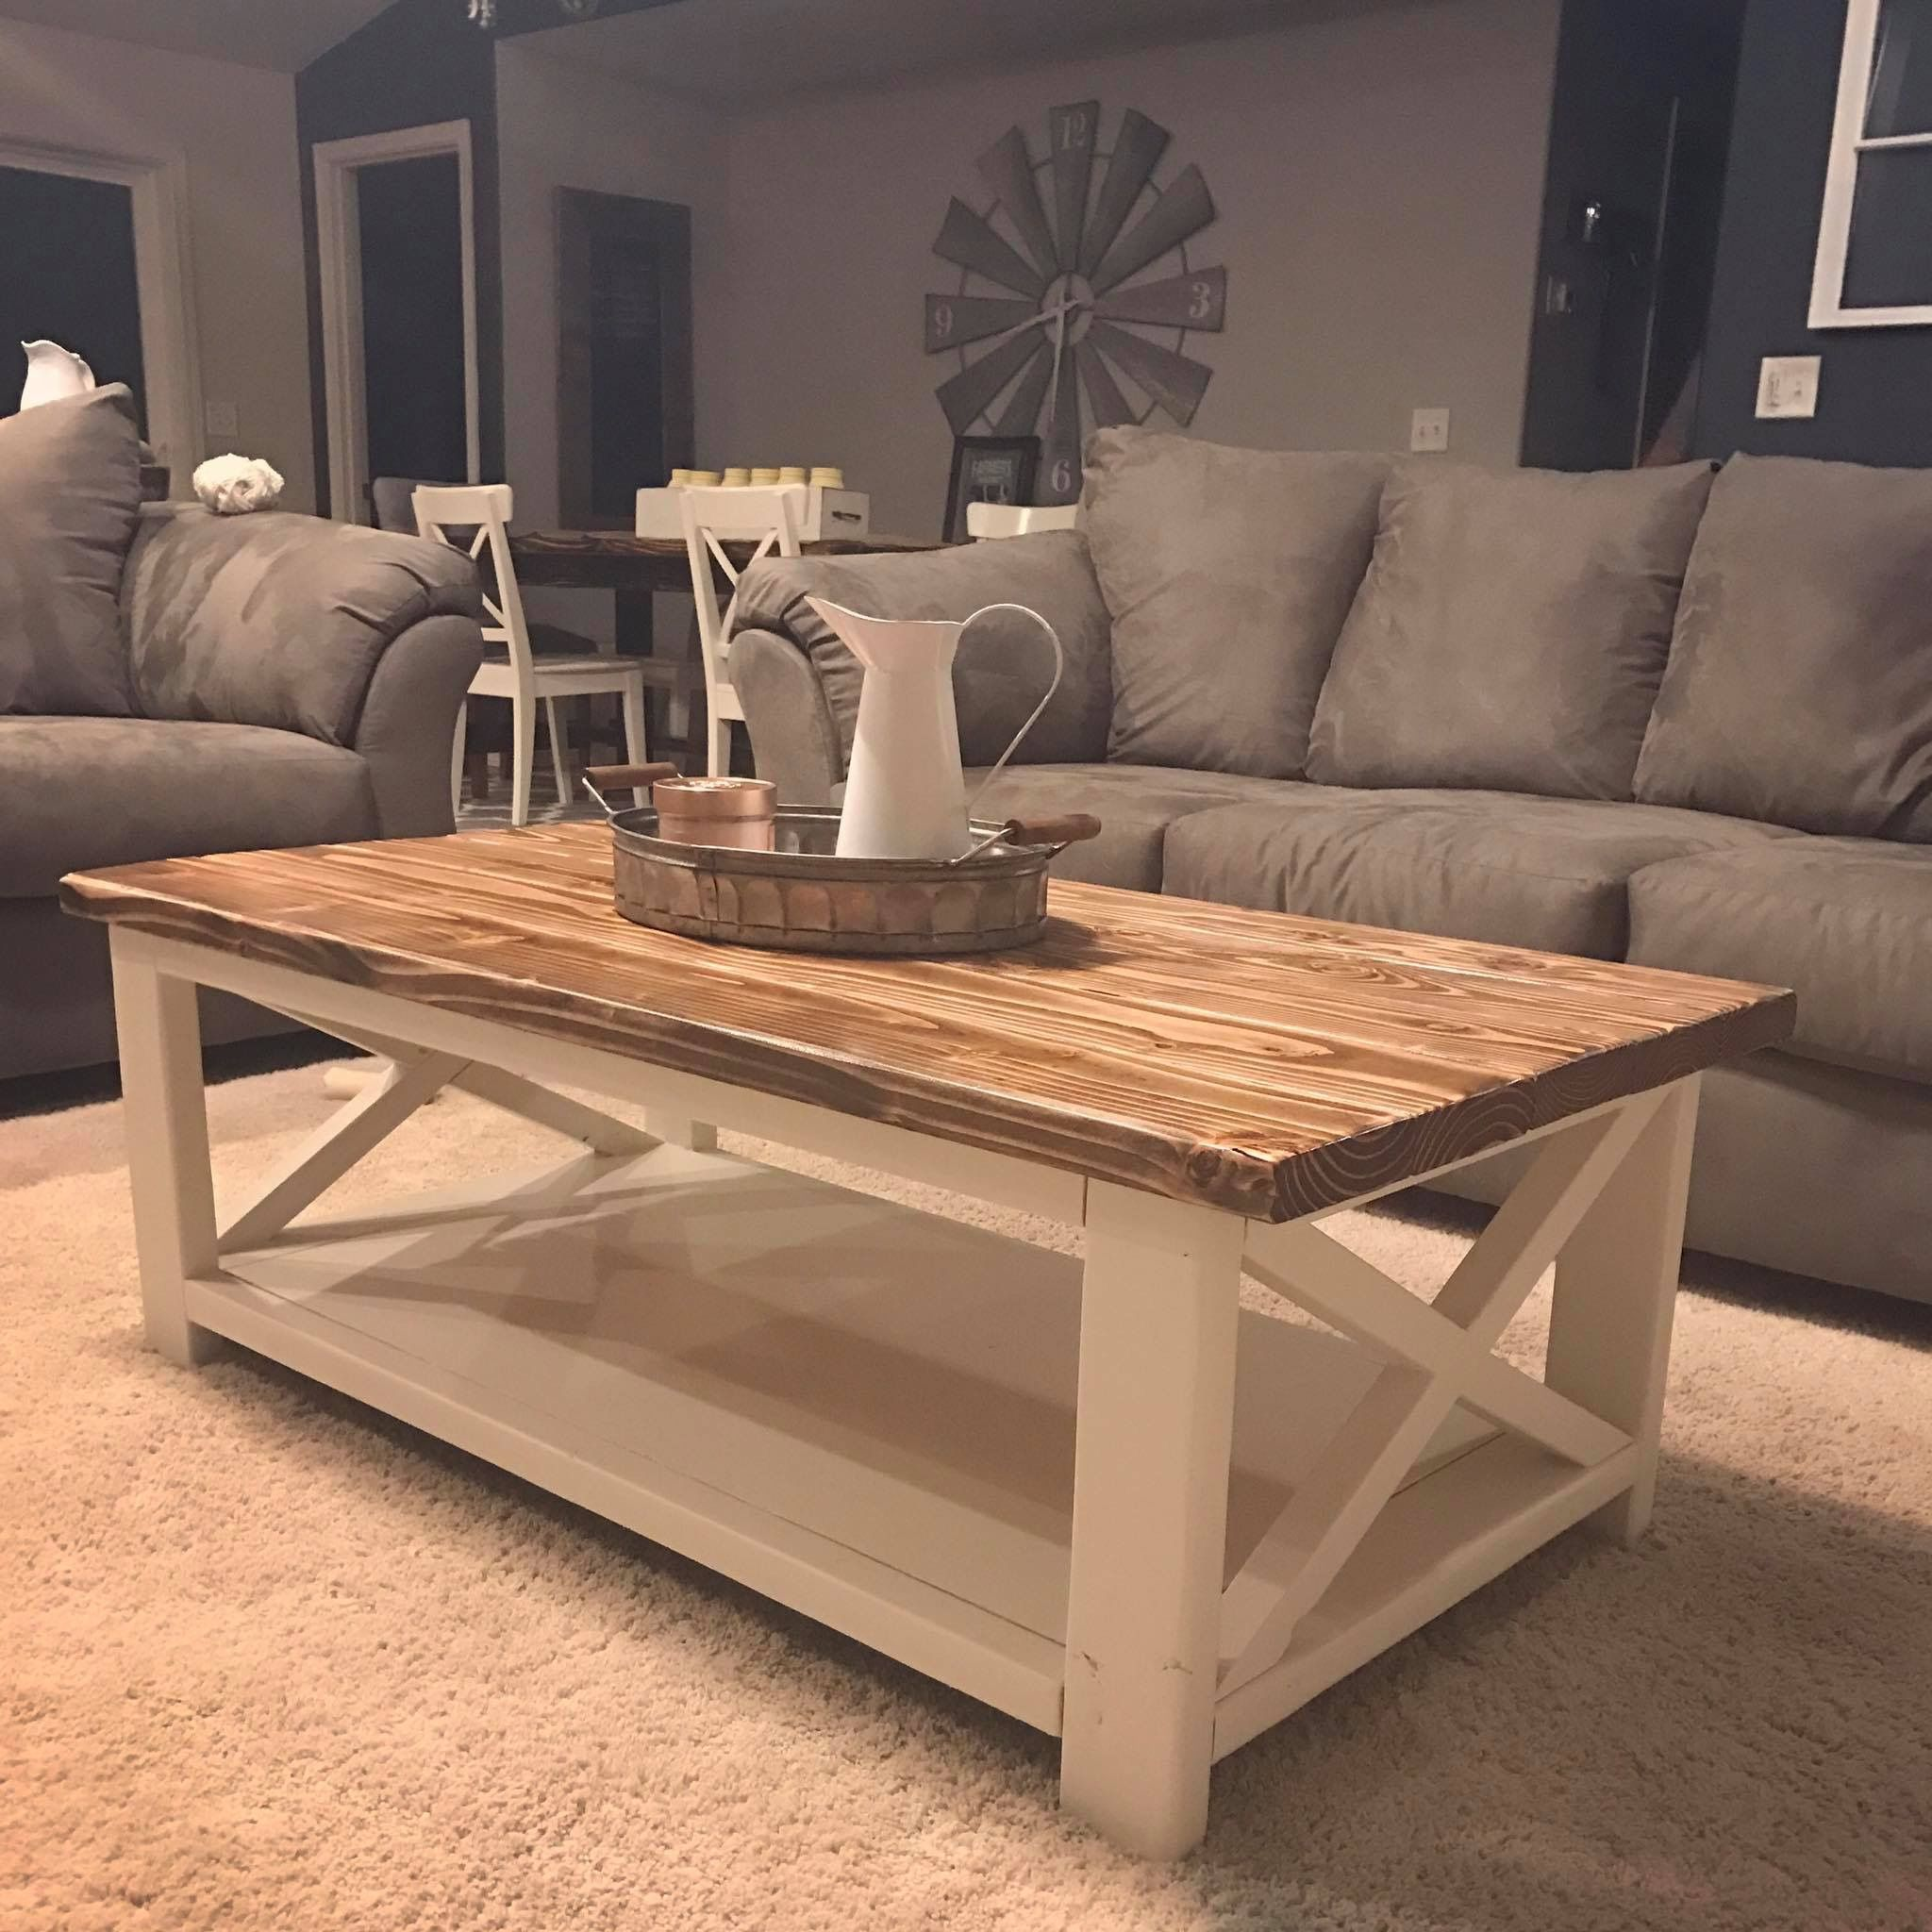 Two Tone Coffee Table Table Decor Living Room Coffee Table